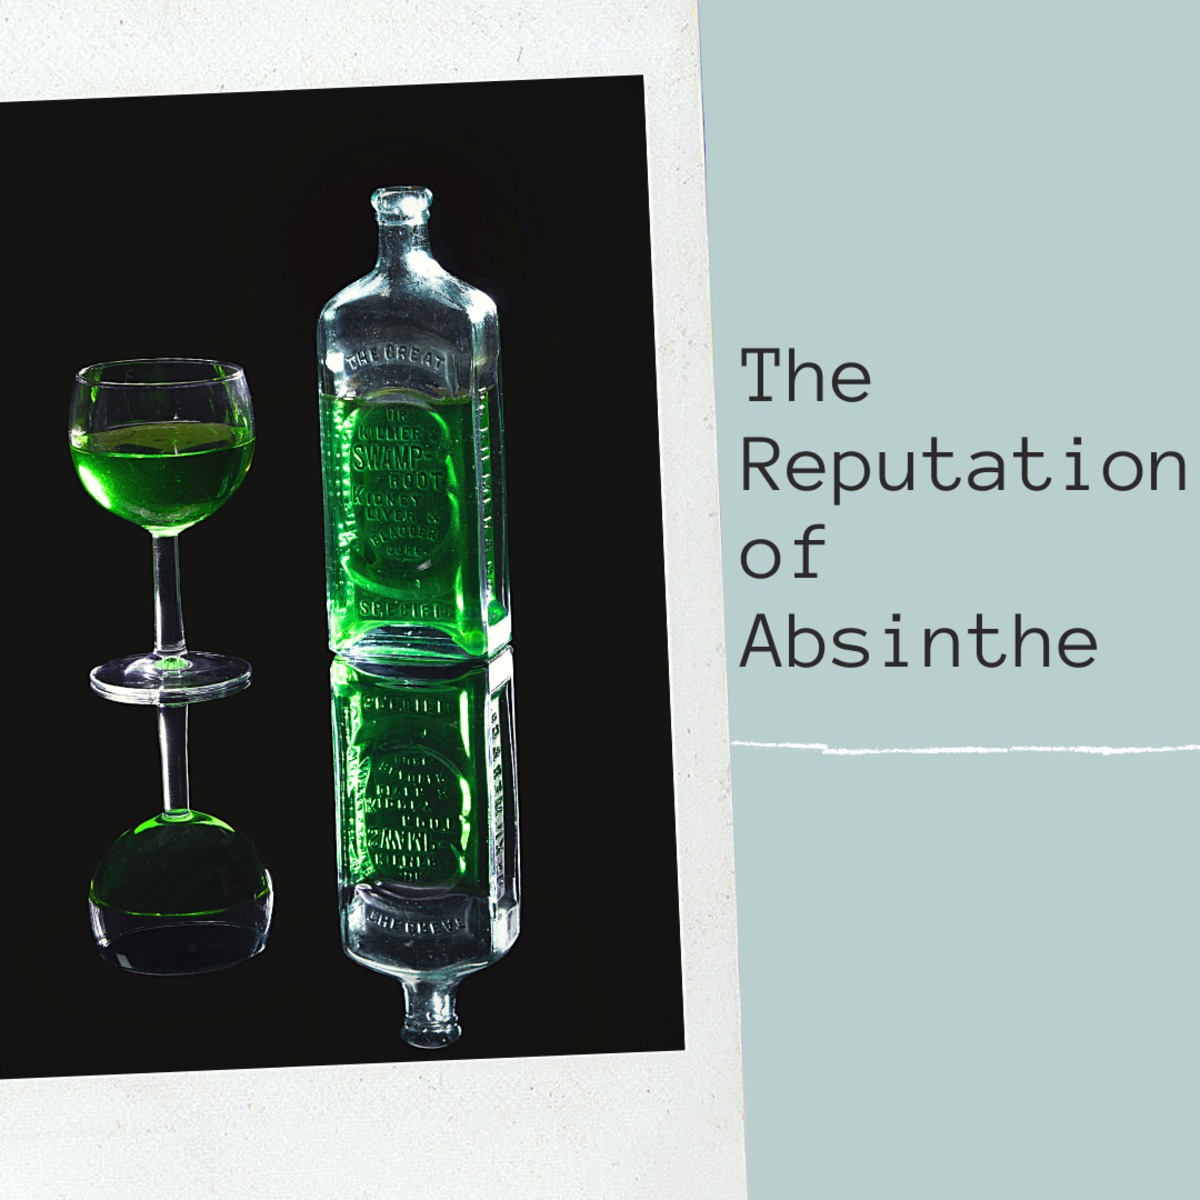 A lot has been said about this highly alcoholic drink. Read on to find out the truth about it.